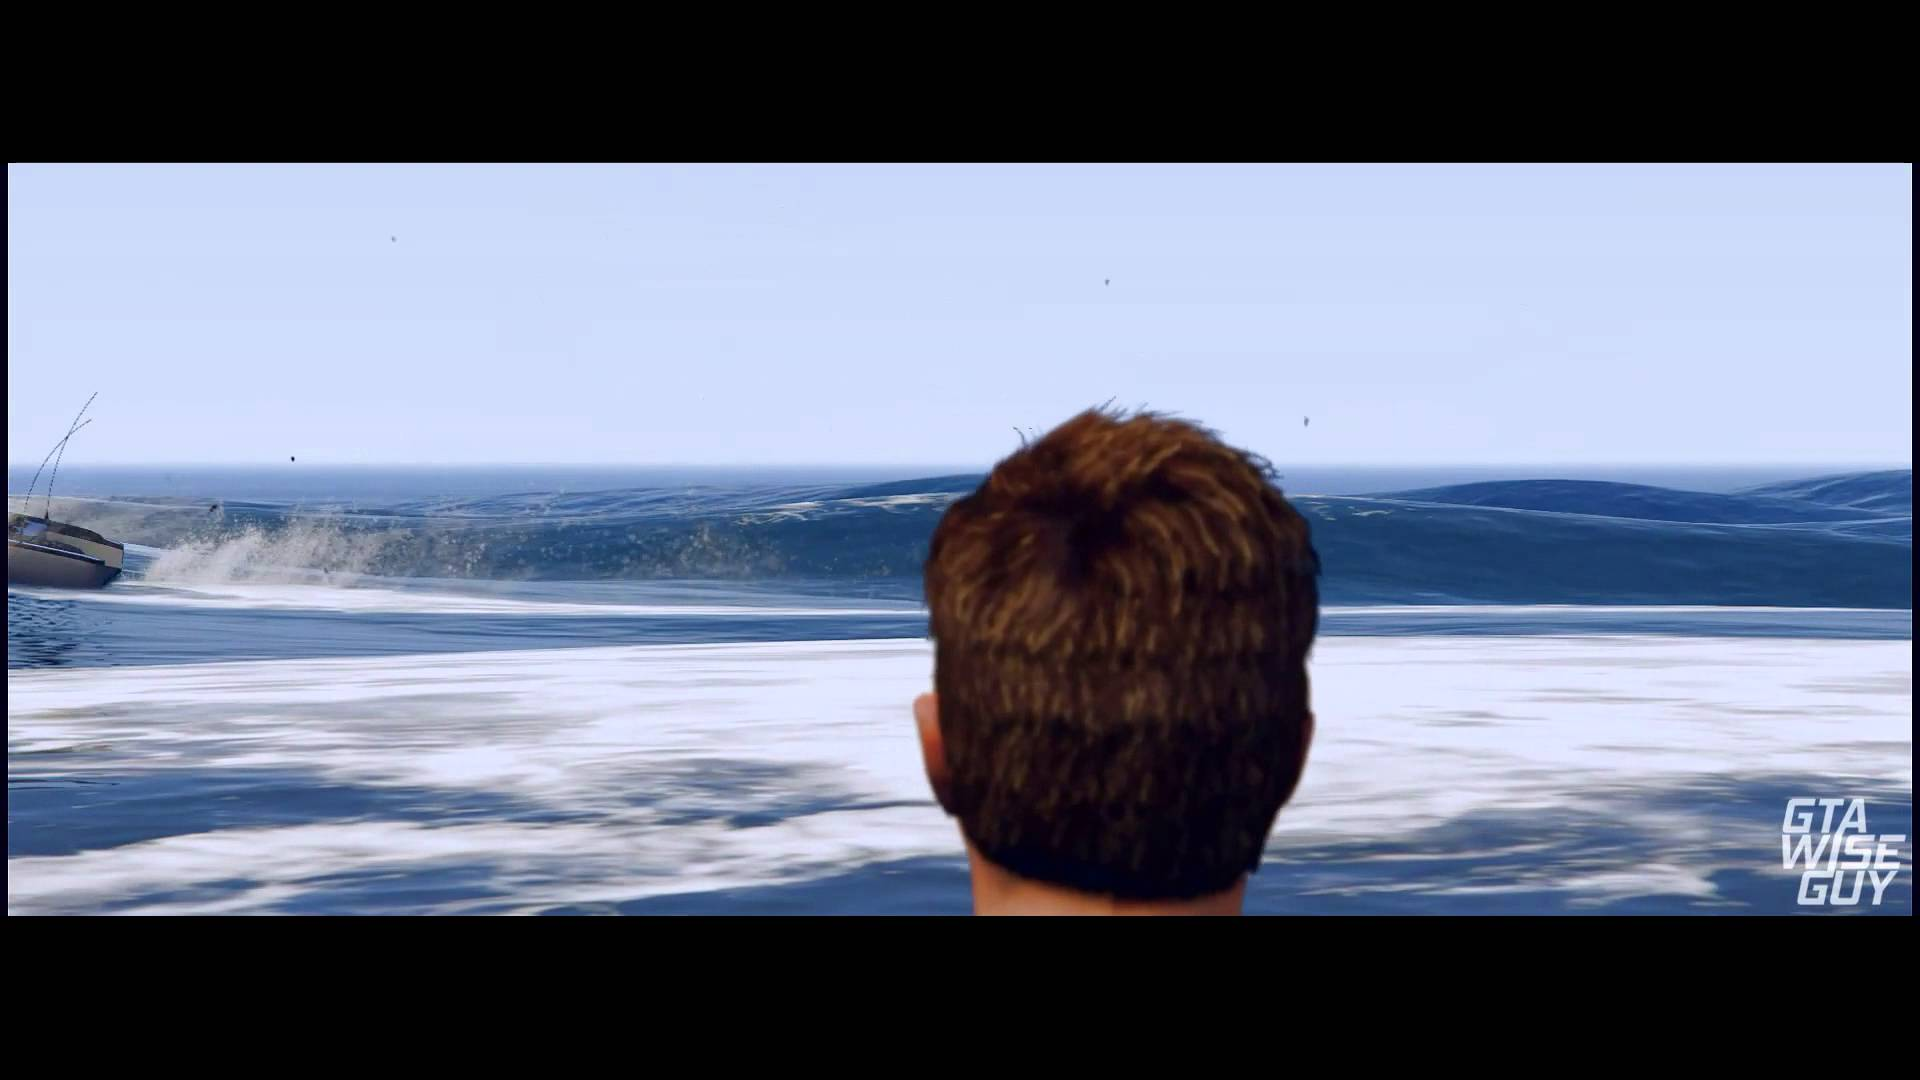 GTA 5 dedica un vídeo para Fast and Furious 7 con tributo a Paul Walker